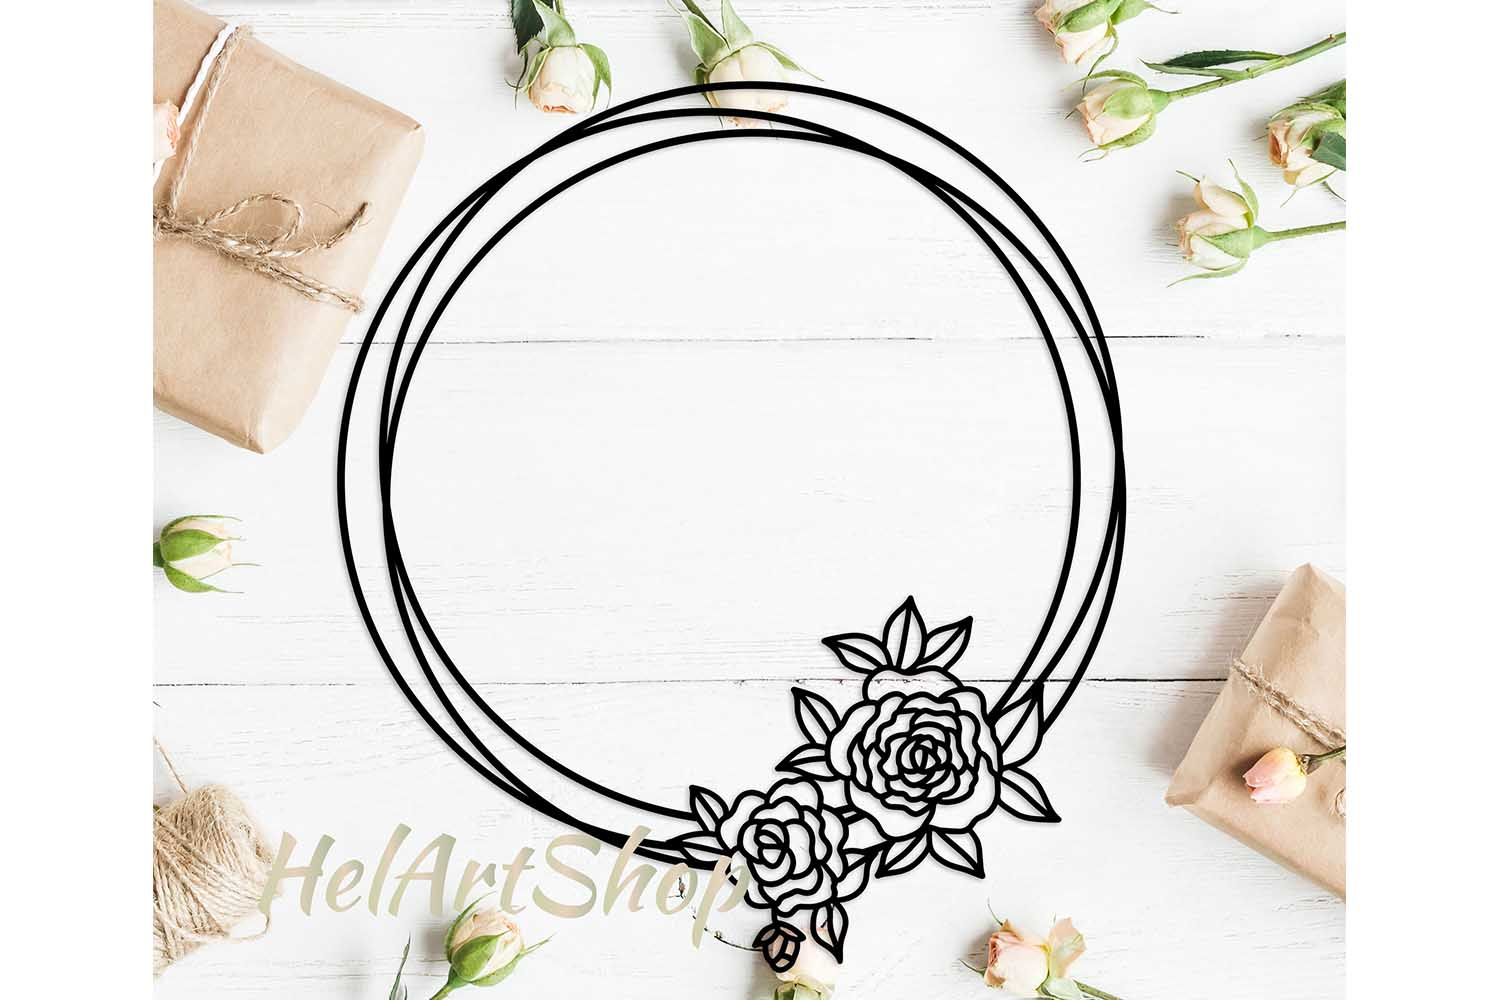 Download Free Flower Frame Graphic By Helartshop Creative Fabrica for Cricut Explore, Silhouette and other cutting machines.